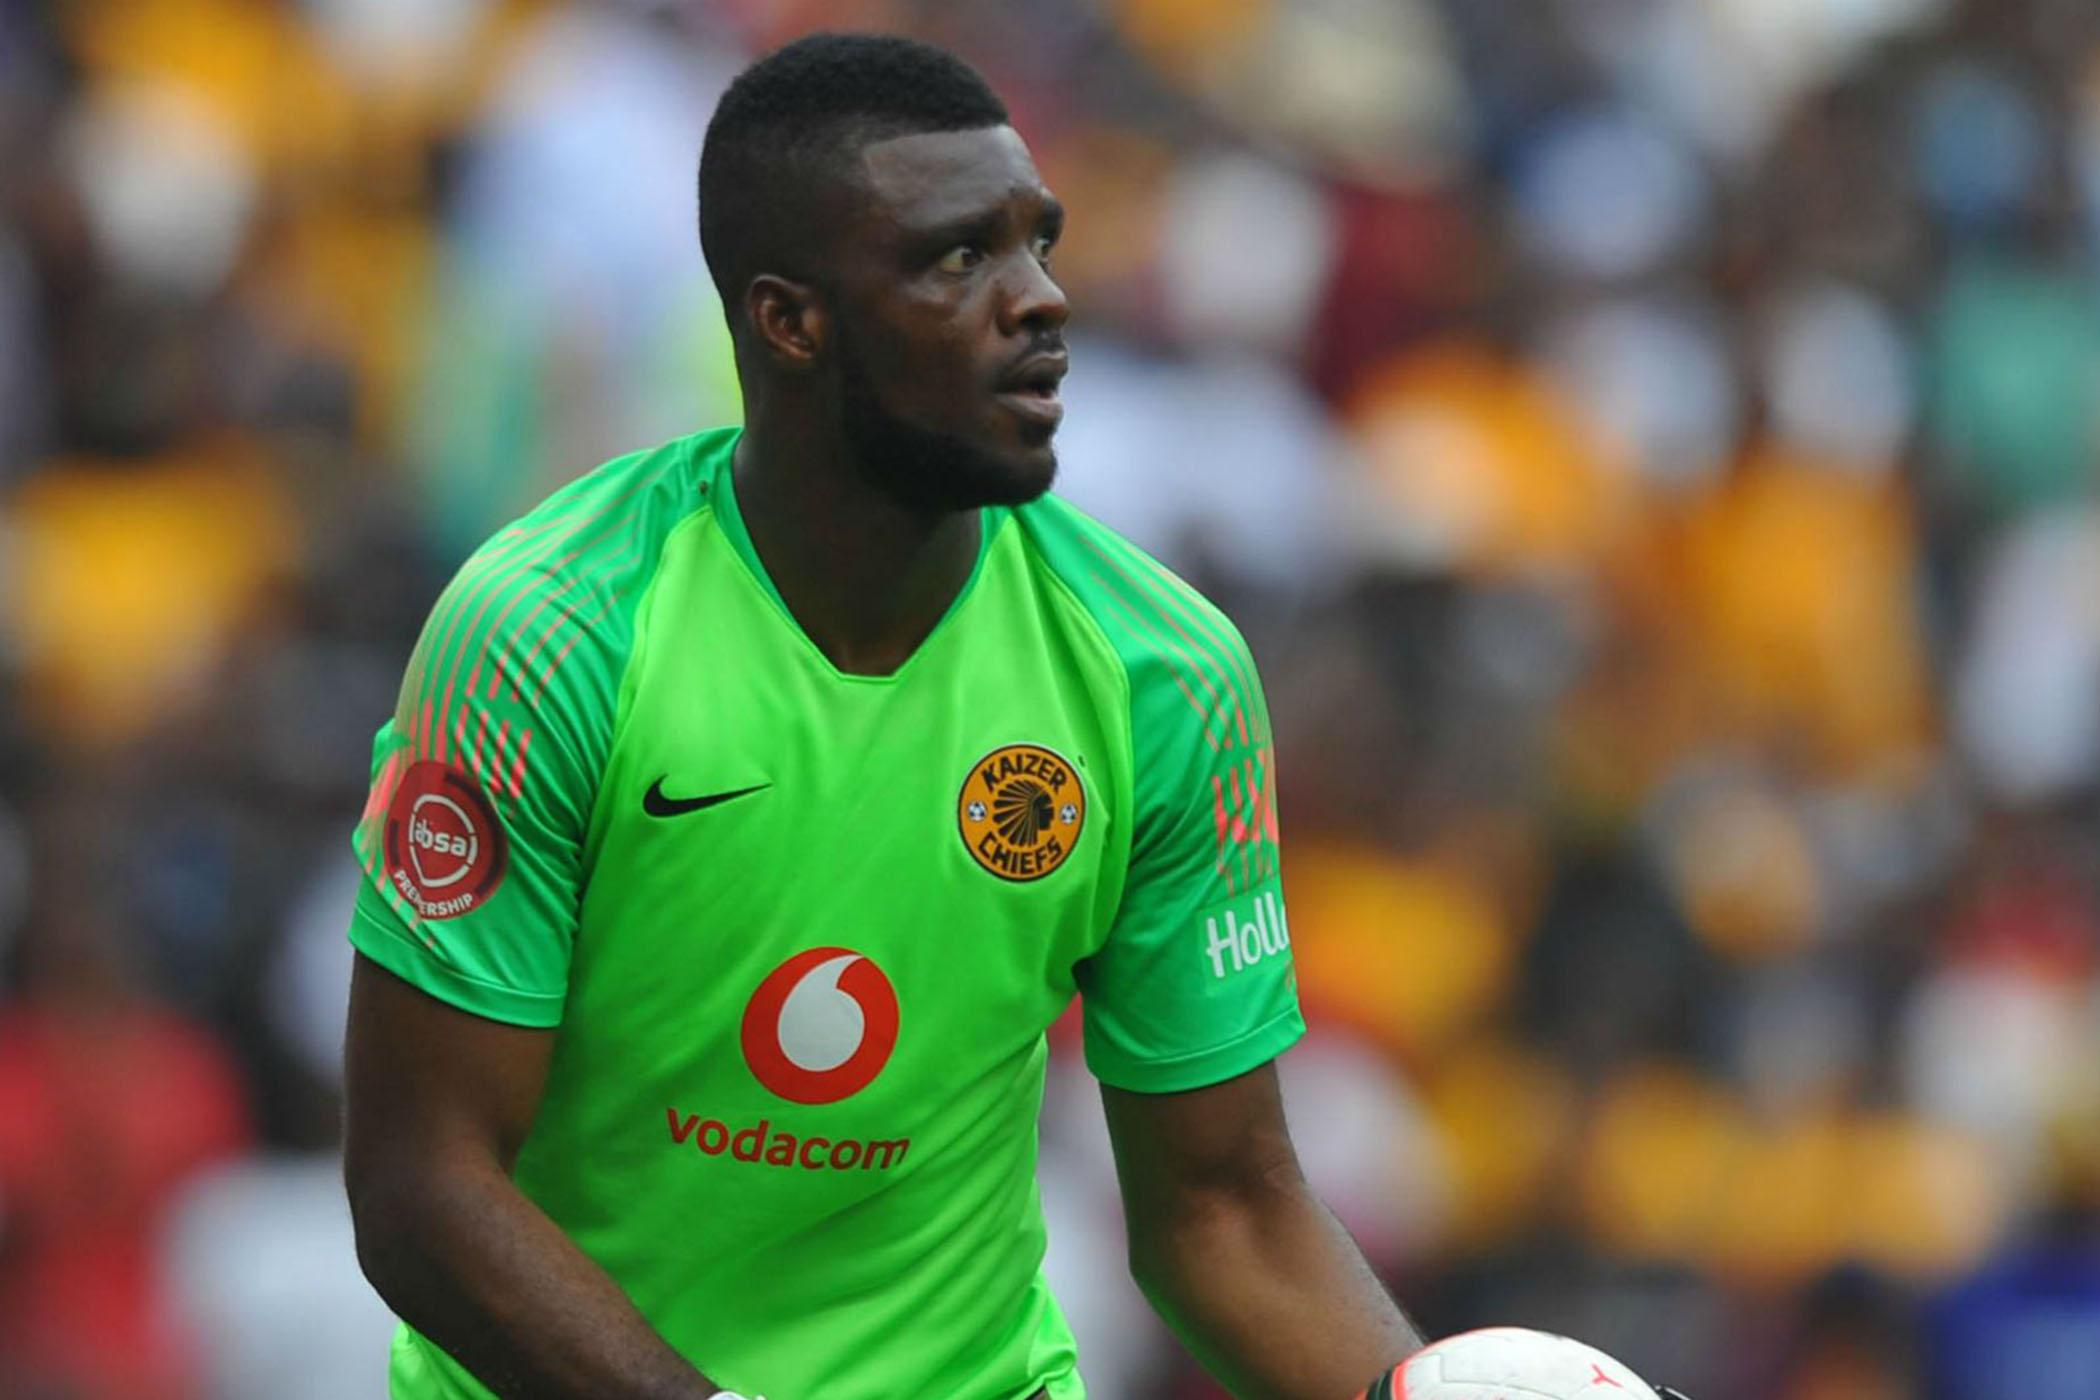 Super Eagles goalkeeper to be eligible for South African citizenship